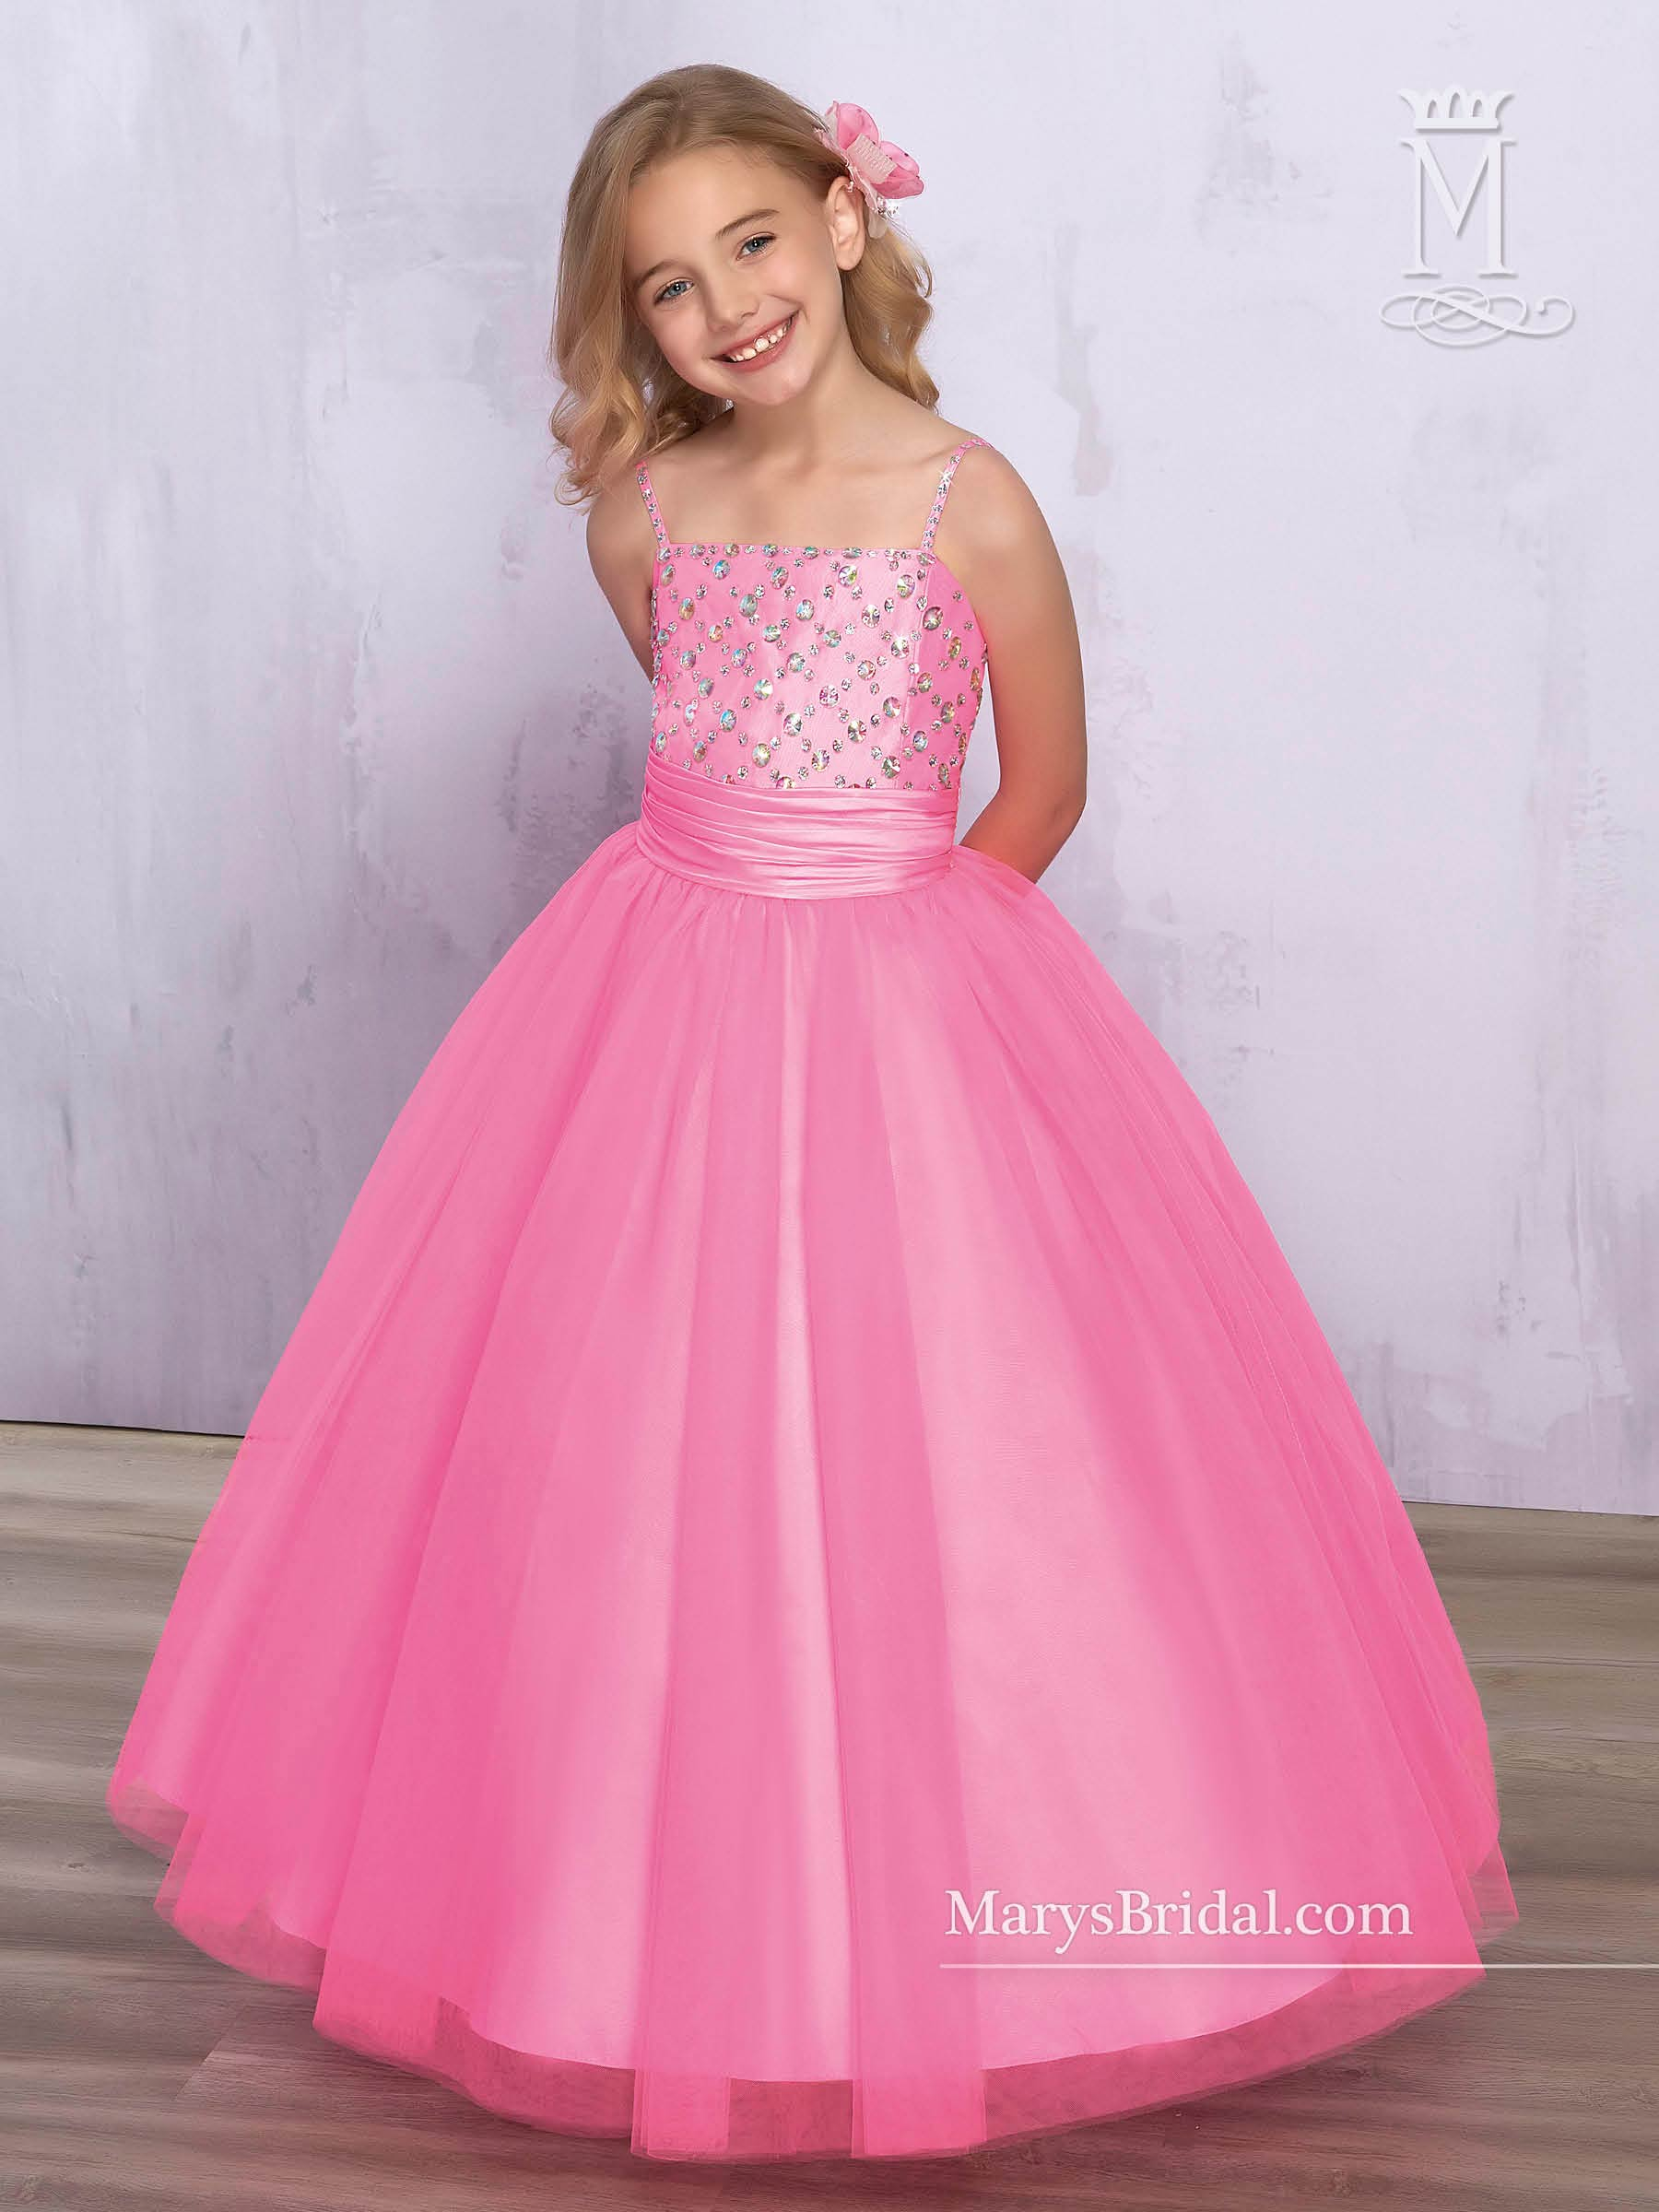 Angel Flower Girl Dresses | Style - F578 in Neon Pink, Ivory, White ...